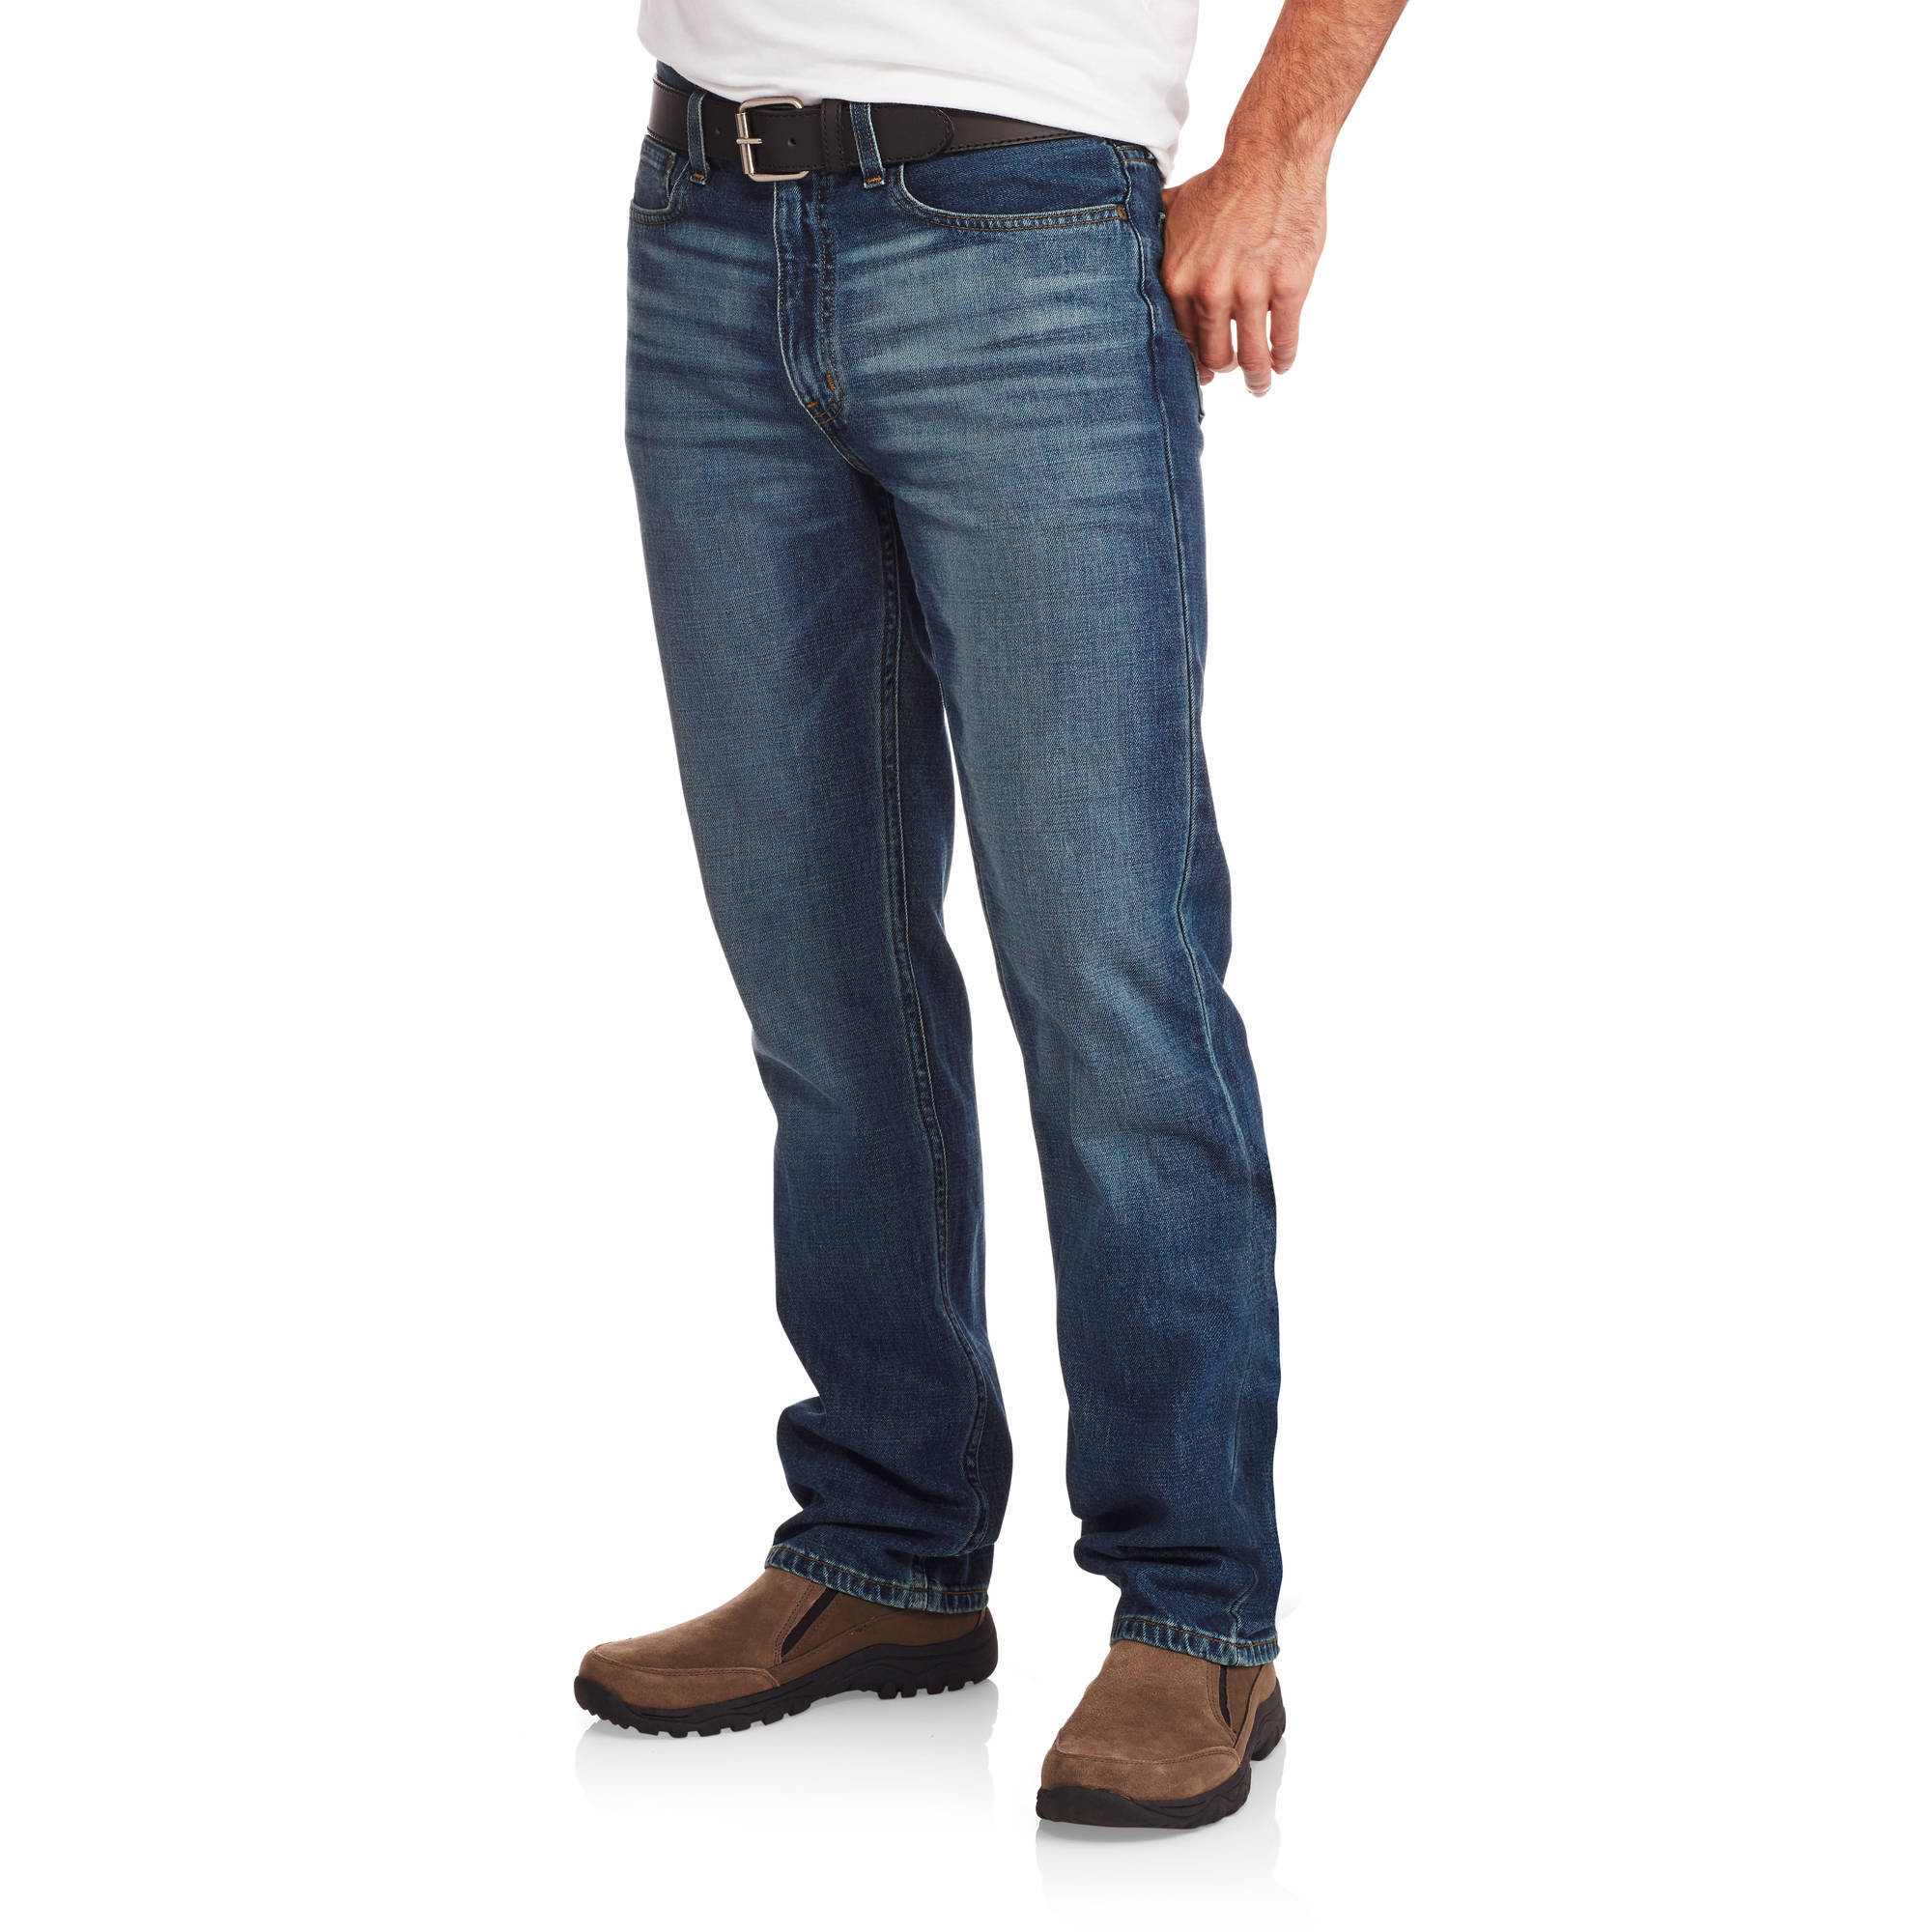 Faded Glory Men's Straight Fit Jeans - Walmart.com